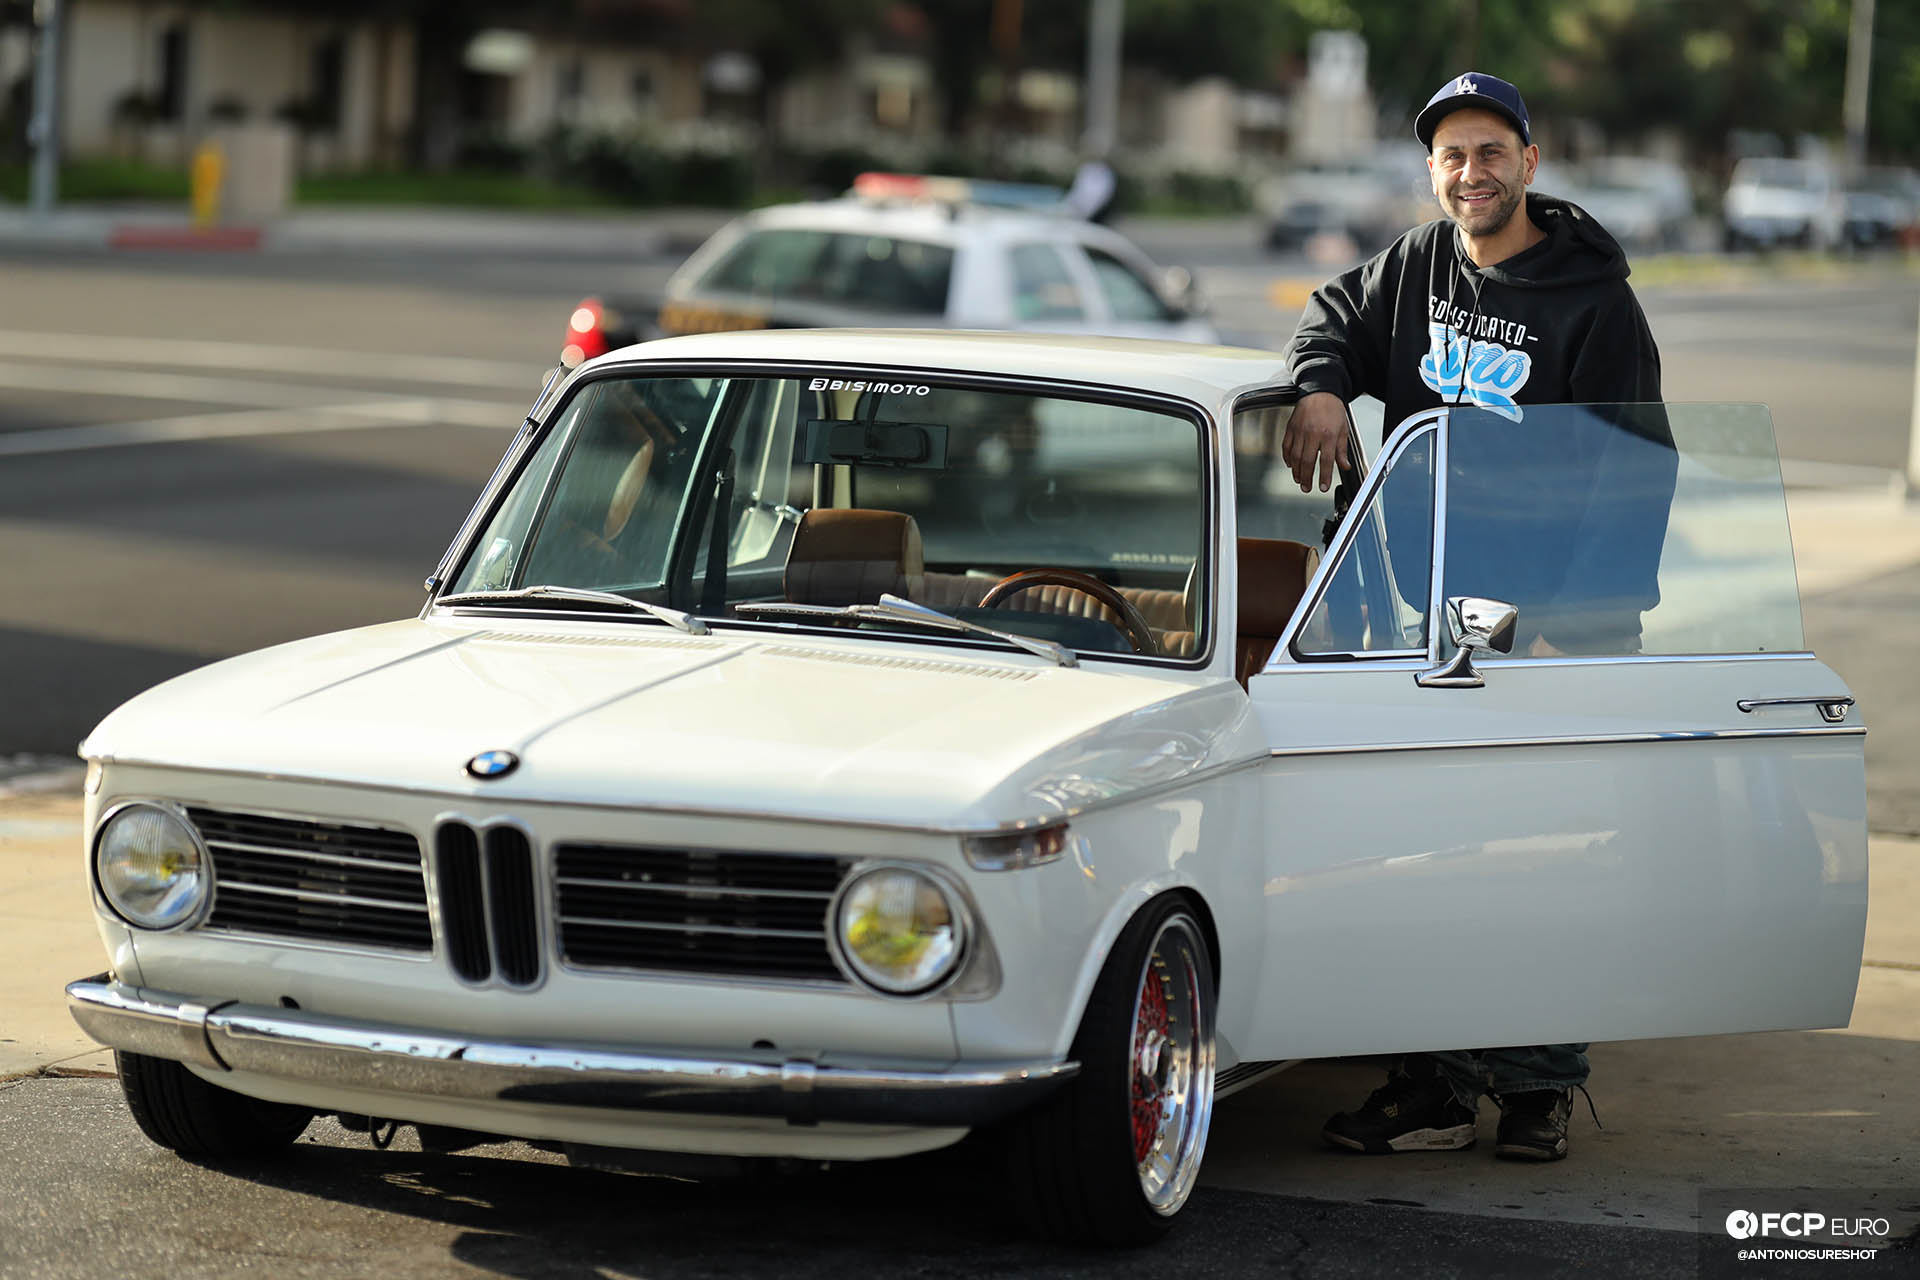 Engine Swapped 1972 BMW 2002 with 400hp Turbo Charged M20 and BBS RS